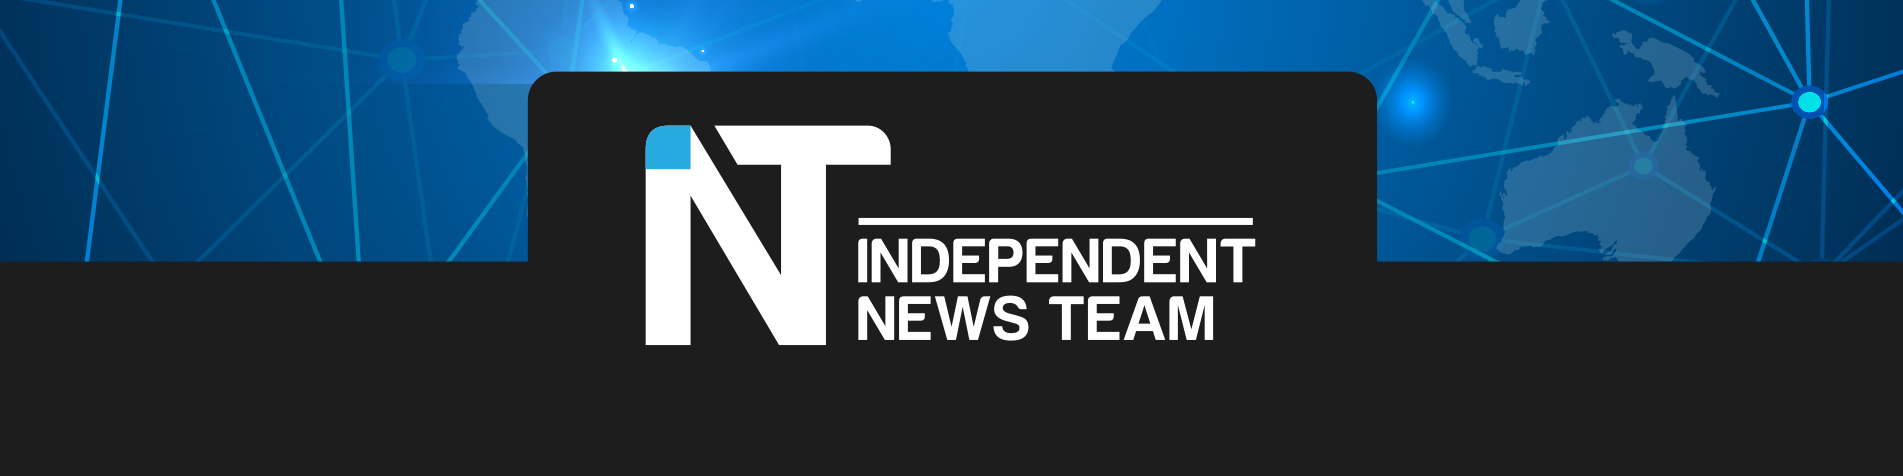 Independent News Team